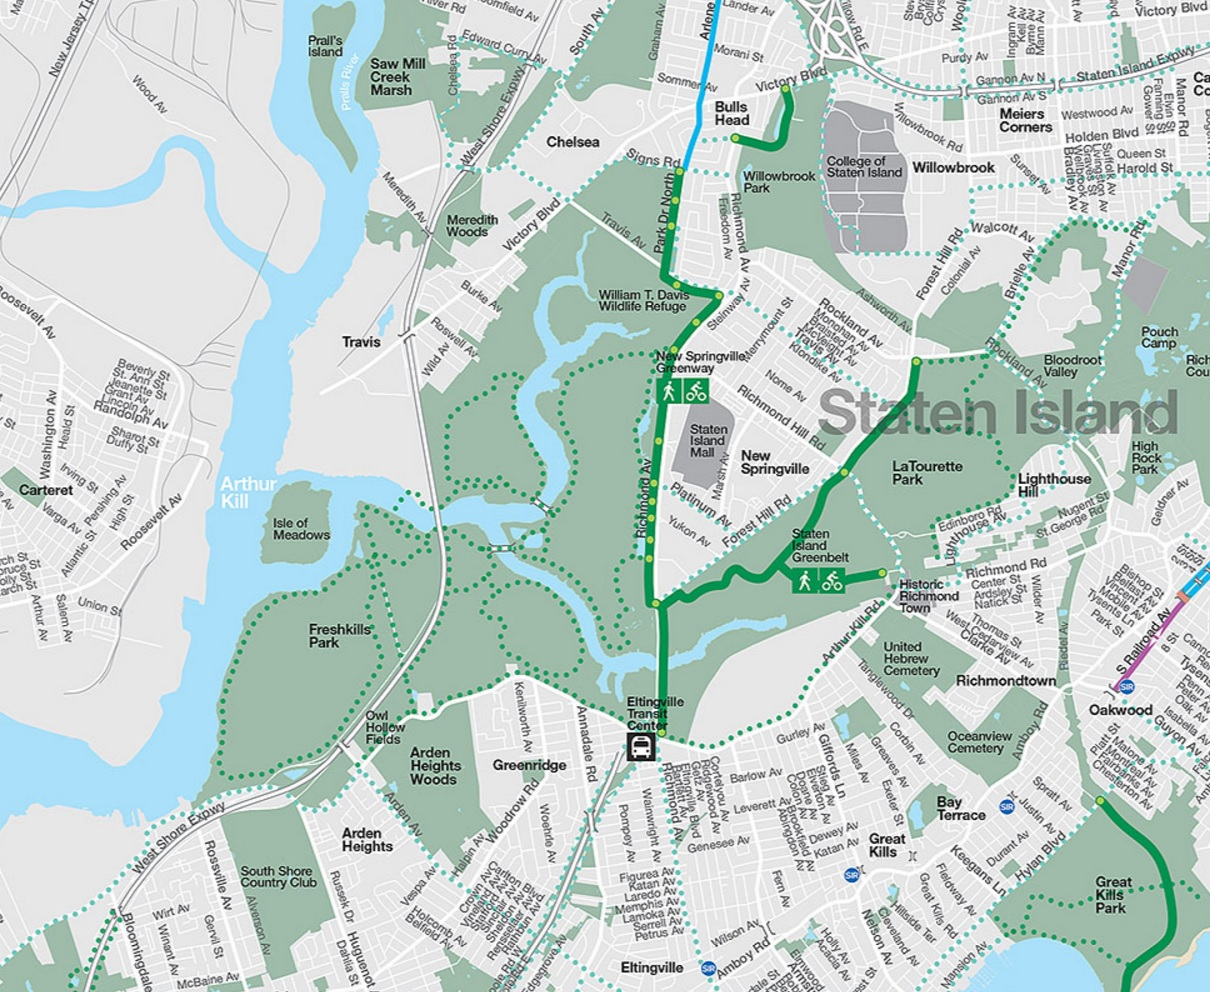 Bike New York Map.2016 Nyc Bike Map Includes The New Springville Greenway